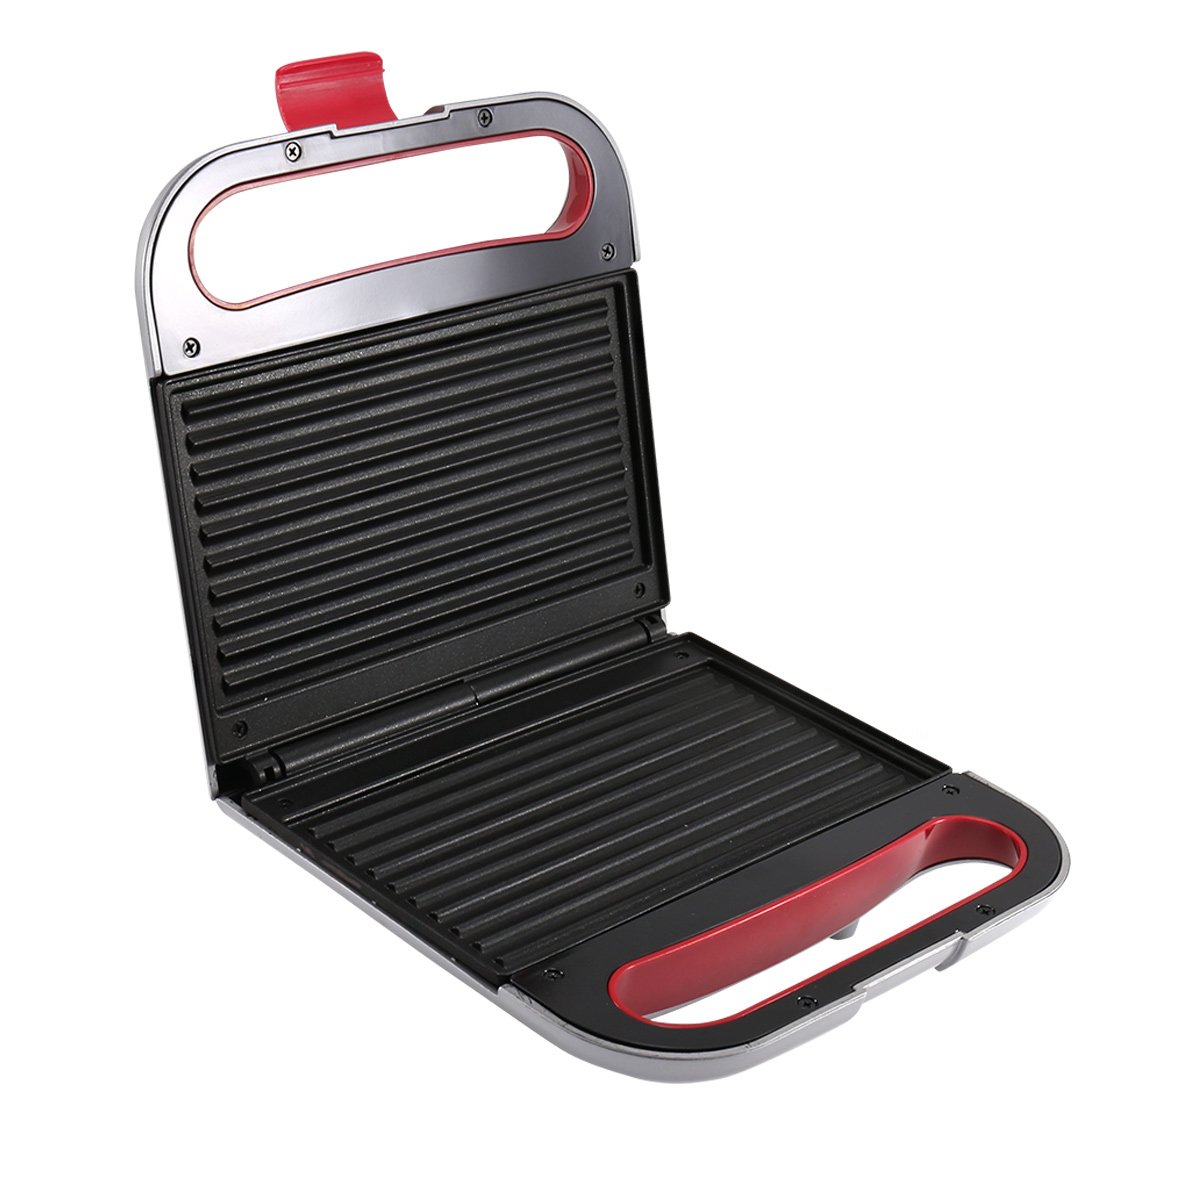 Health and Home Gourment Panini Press Grill Maker by Health and Home